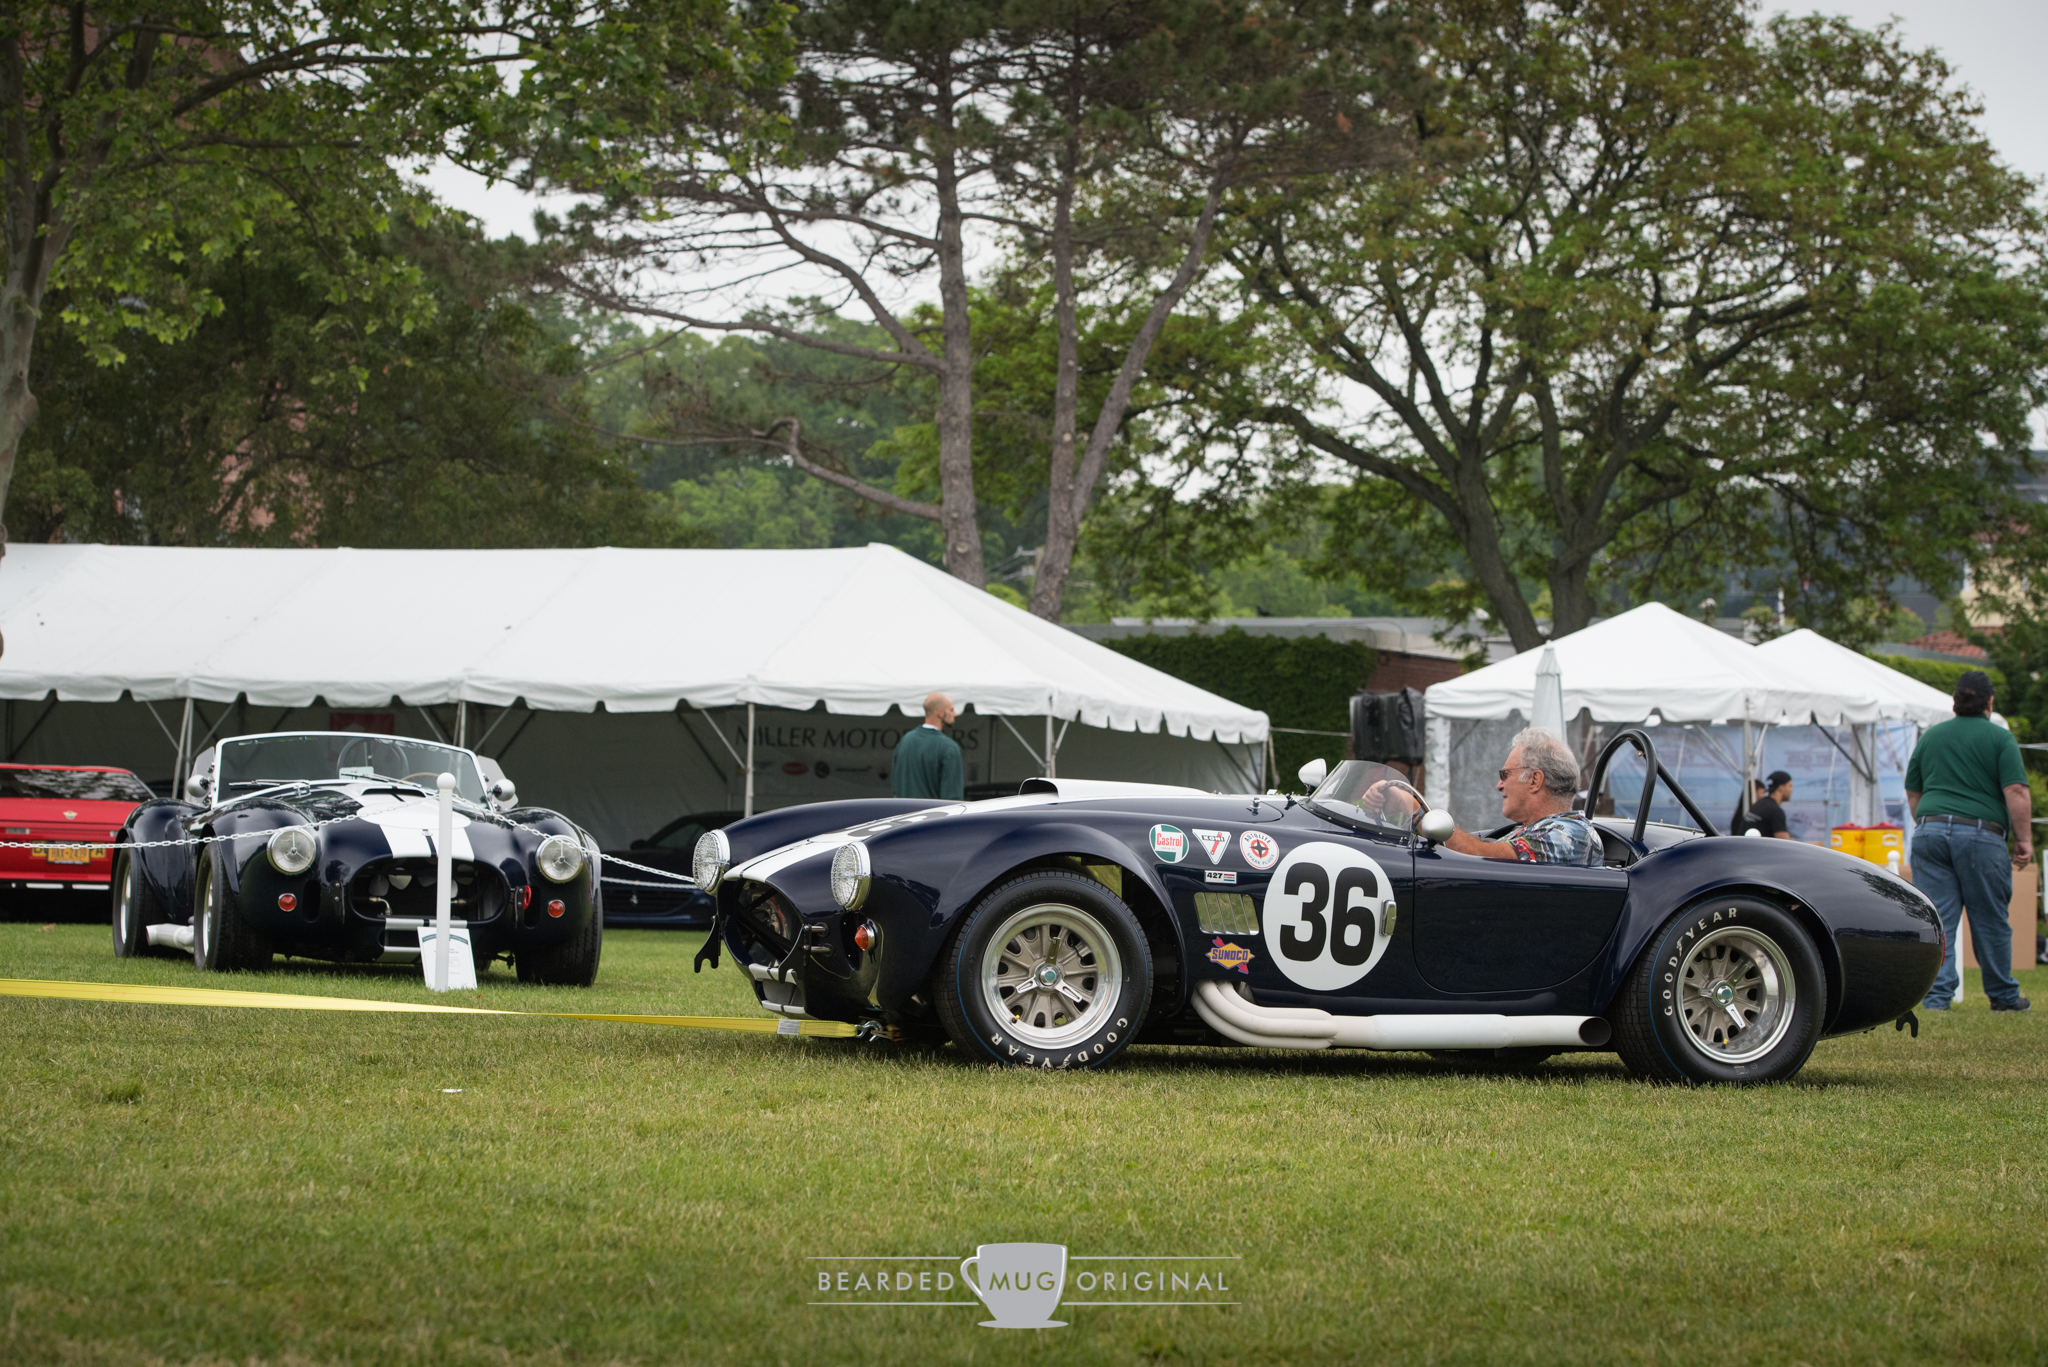 I can only imagine the immense feeling of joy one must have when they're being pulled past their parked tribute Cobra while behind the wheel of their authentic Cobra. #GOALS.